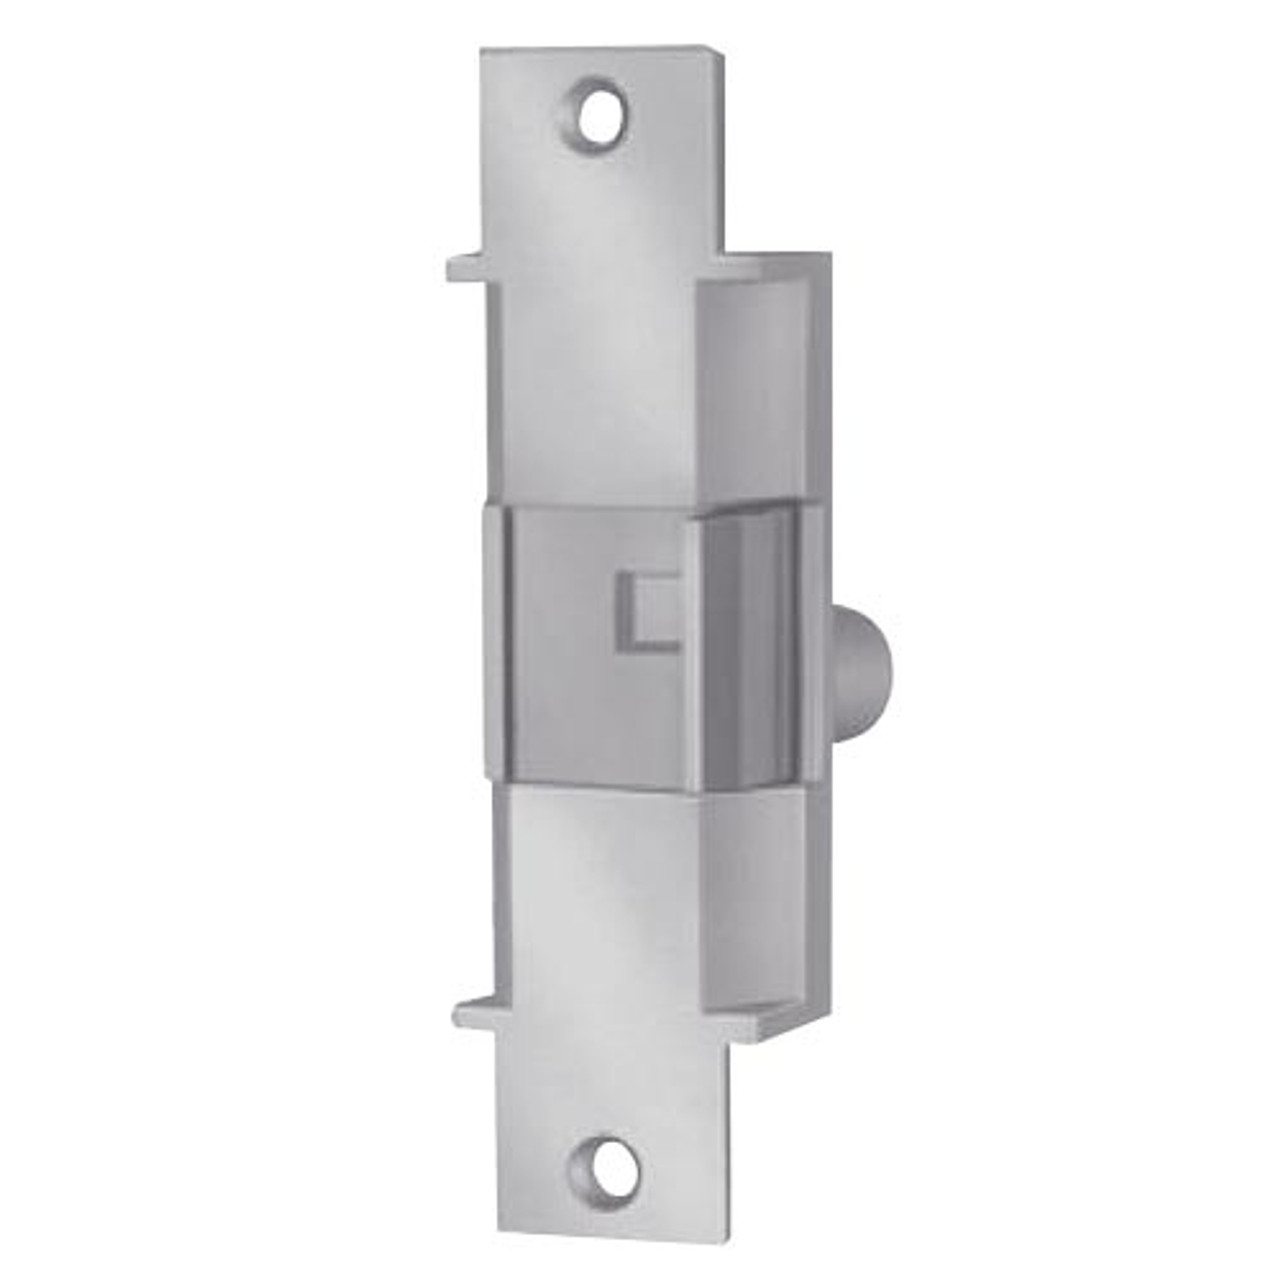 6221-FS-DS-LC-12VDC-US32D Von Duprin Electric Strike in Satin Stainless Steel Finish